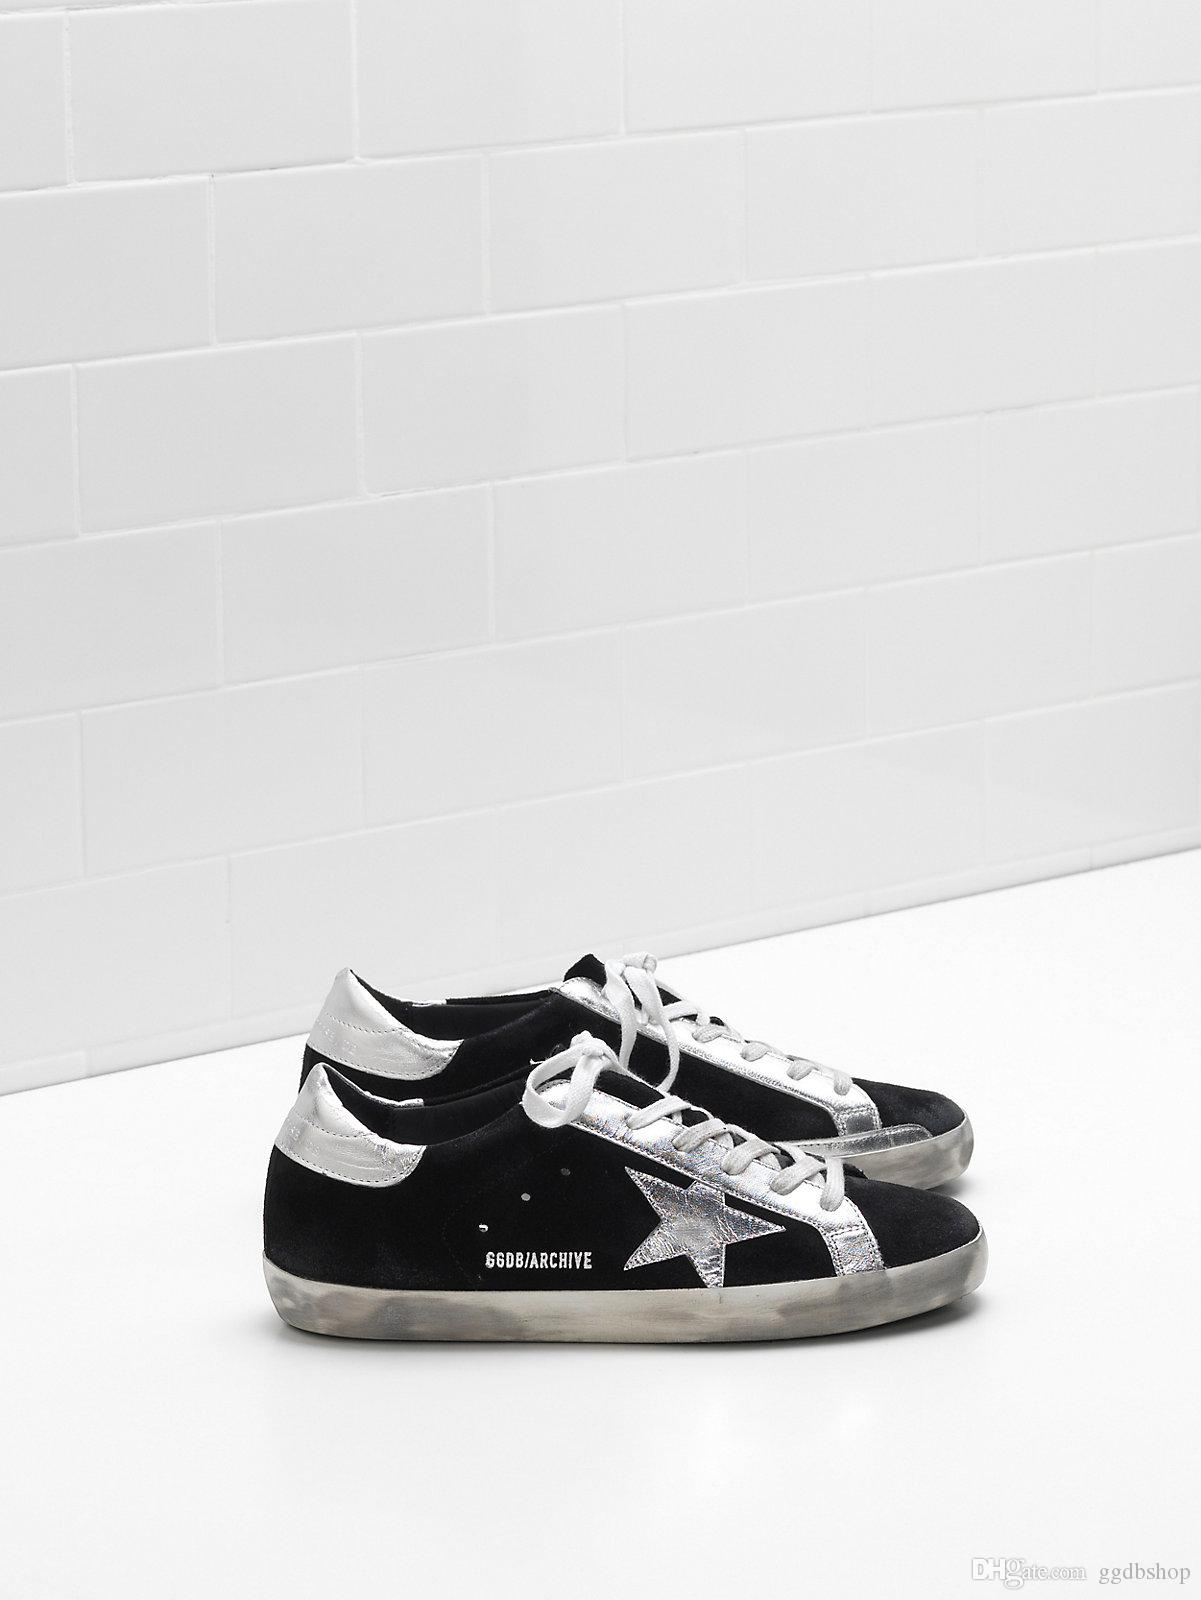 c2e1a32e67bf Italy Women Sneakers Shoes Men Scarpe Donna Uomo Superstar Archive Sneakers  Calf Suede Upper Star And Heel Tab In Metallic Leather Details I Clogs For  Women ...